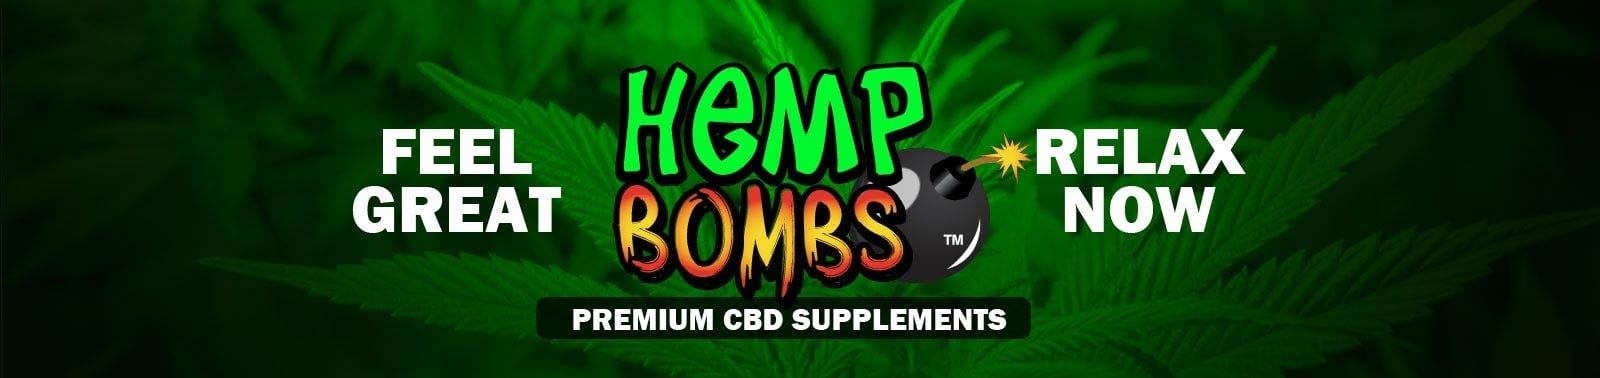 Feel great and relax now with Hemp Bombs premium CBD supplements